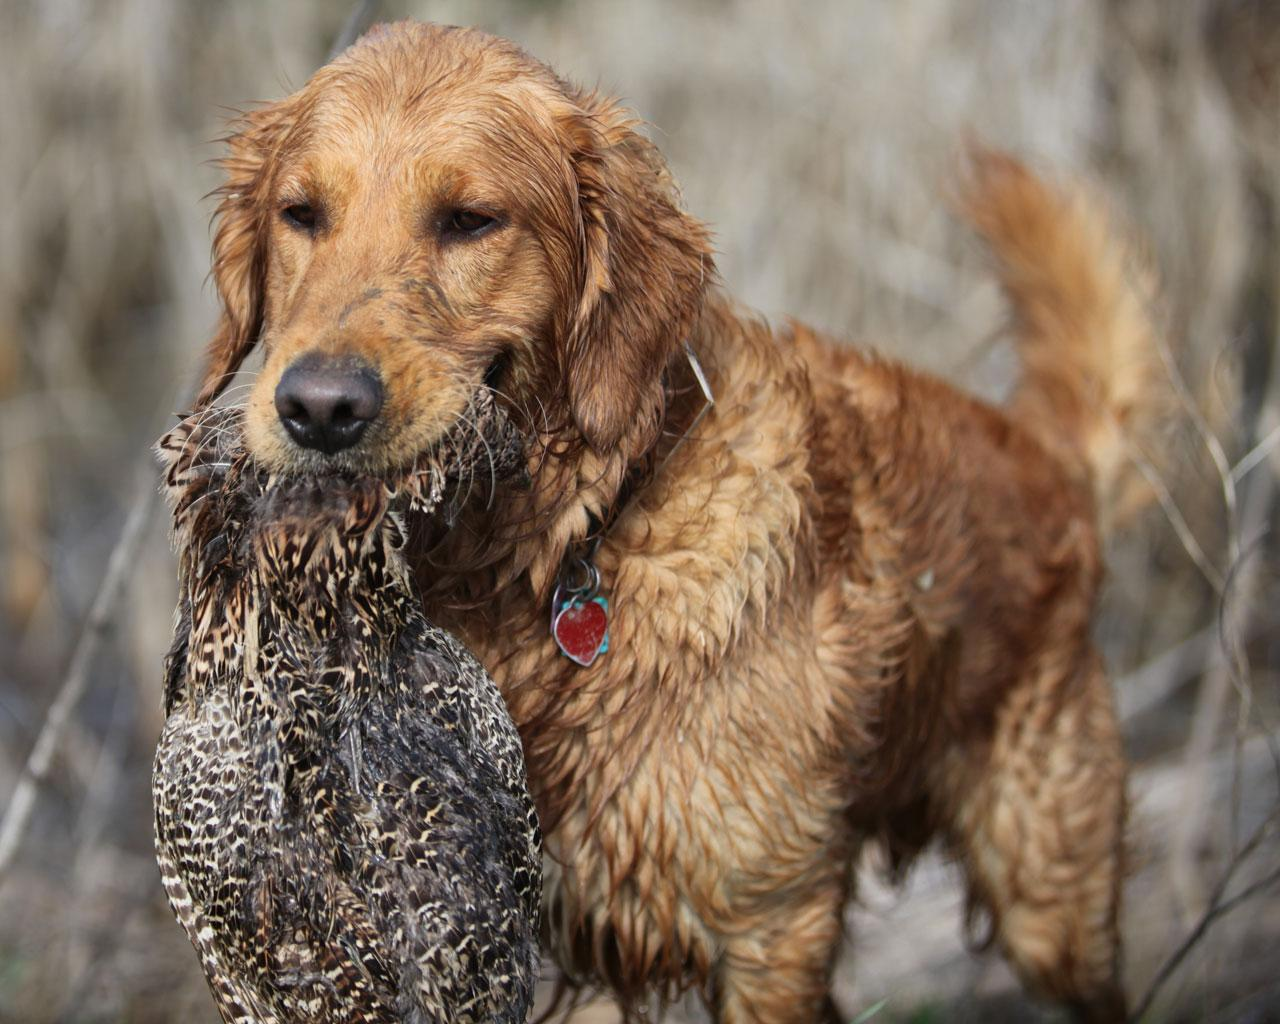 Golden Retriever - Retrieving Wildfowl at the Hunt Wallpaper #4 1280 x 1024